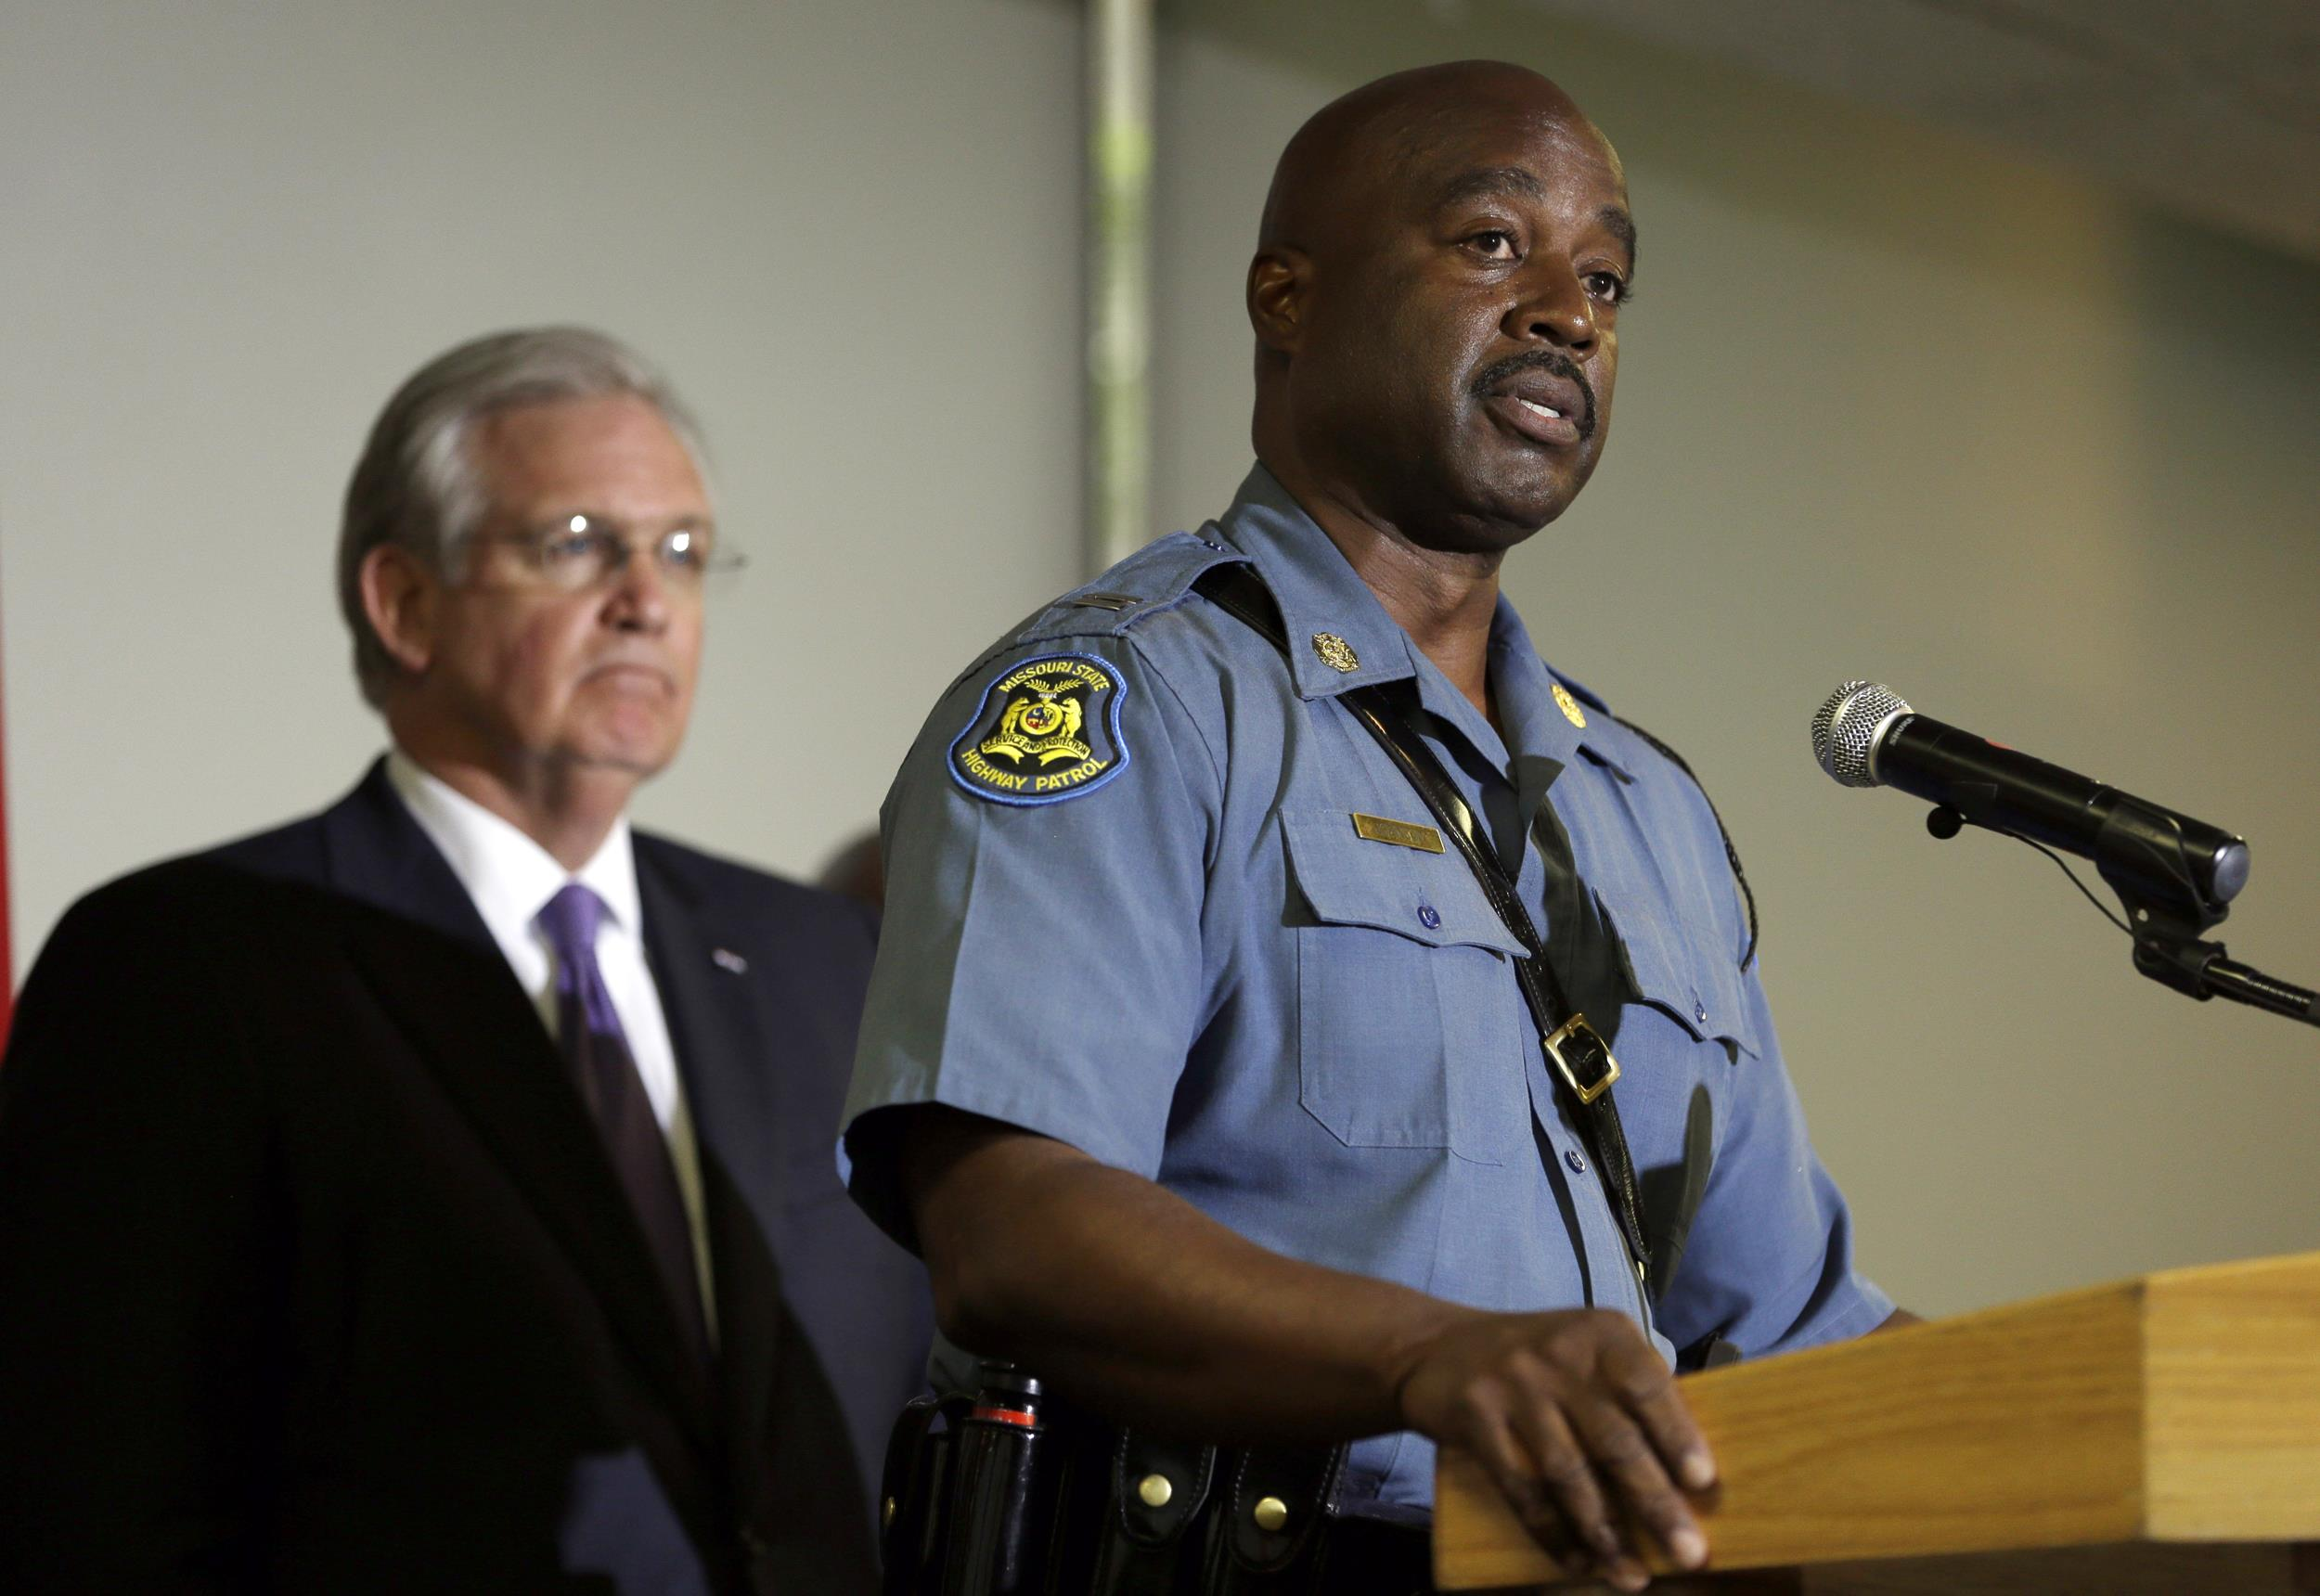 Image: Capt. Ron Johnson of the Missouri Highway Patrol speaks during a news conference